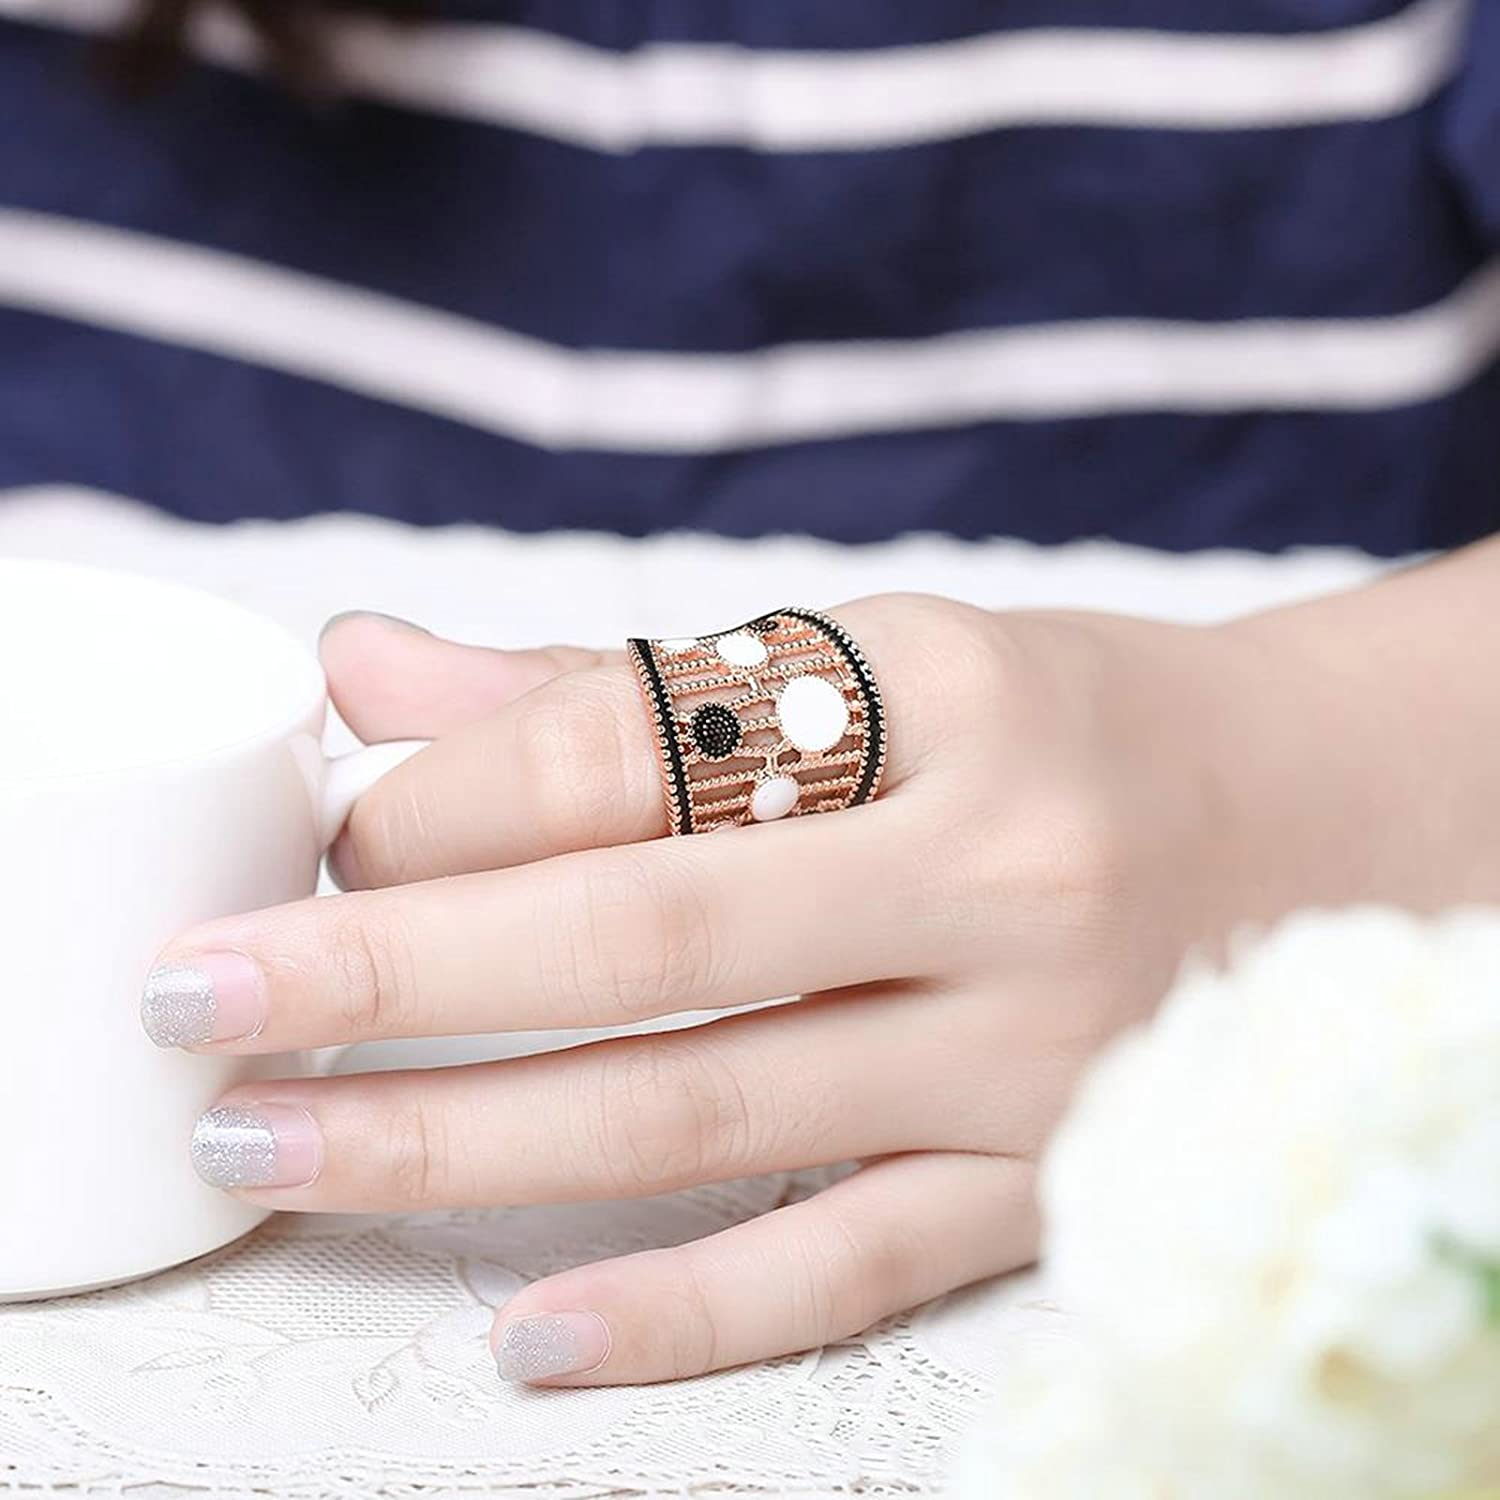 Gnzoe Jewelry 18K Rose Gold Plated Women Rings Design Hollow Geometry Size 7